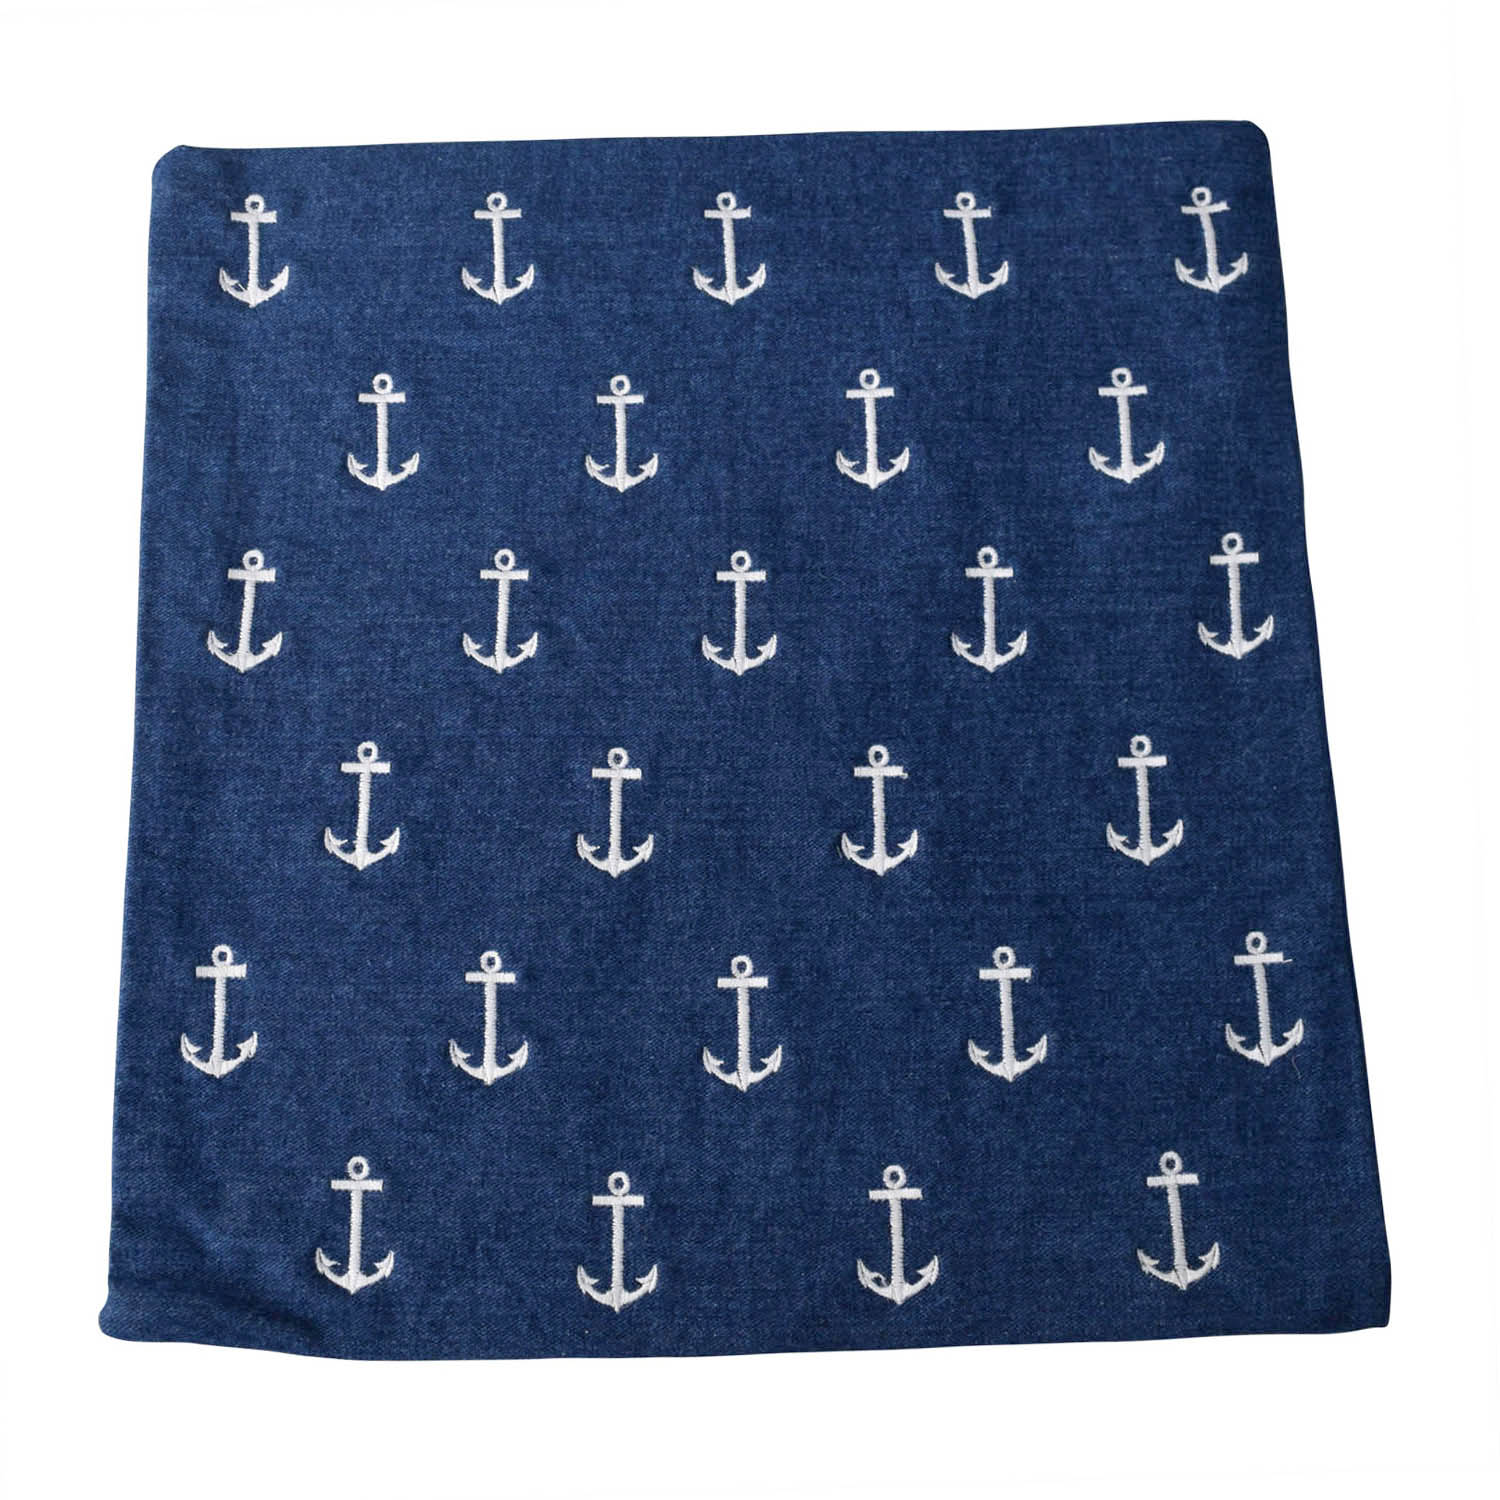 shop Obeetee Anchor Cushion Cover Obeetee Decor